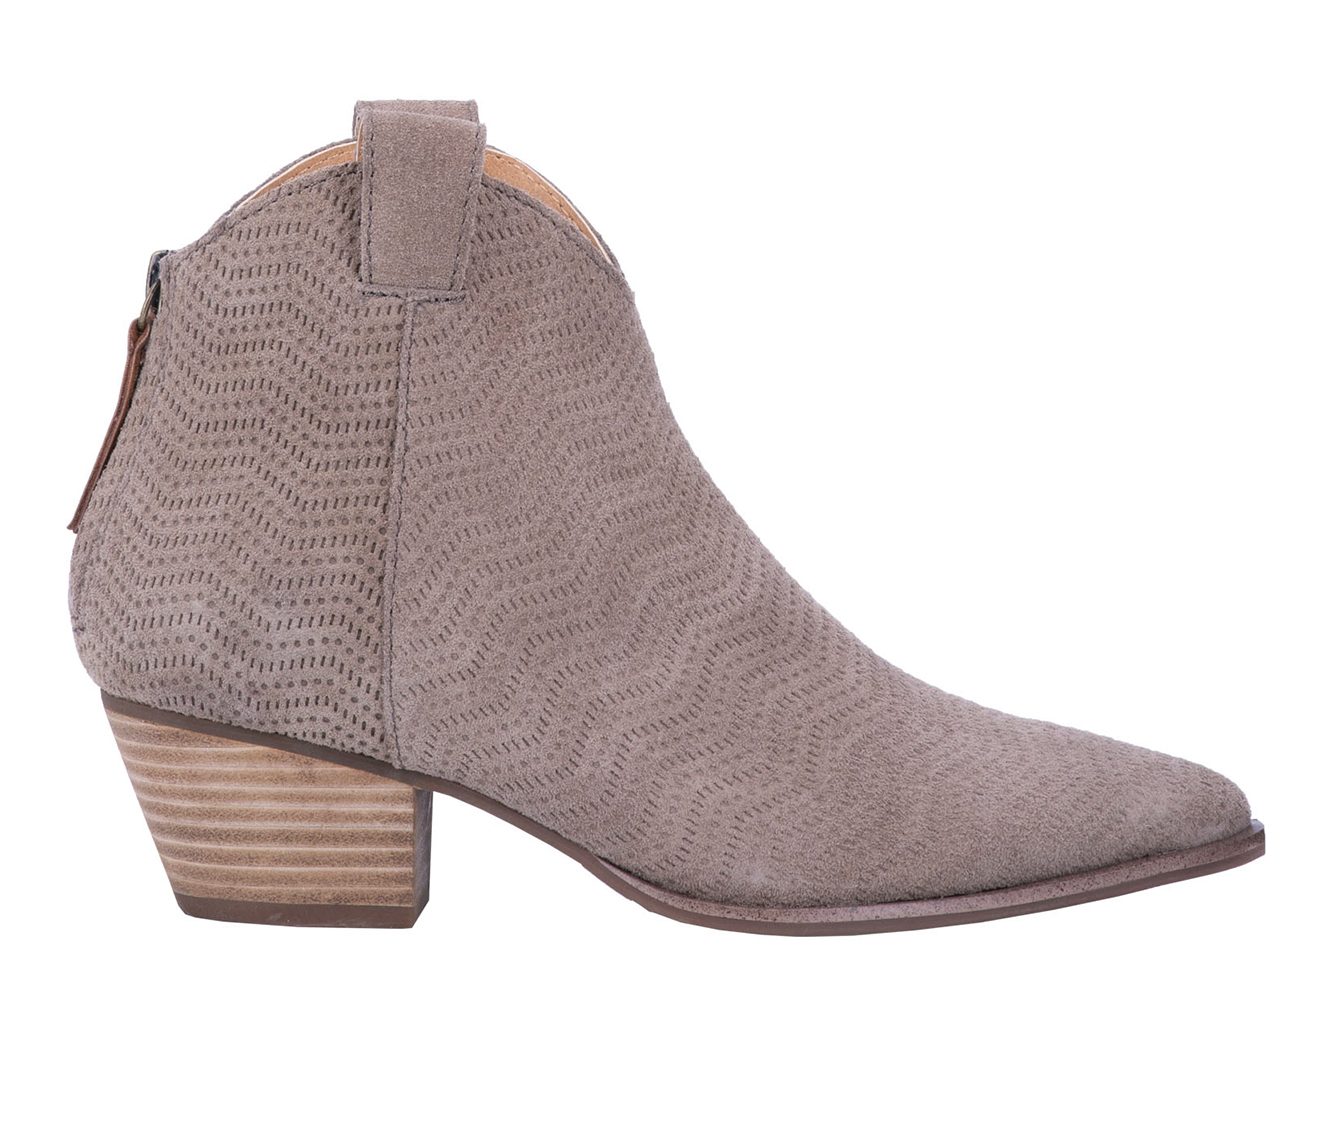 Dingo Boots Kuster Women's Boots (Brown - Leather)